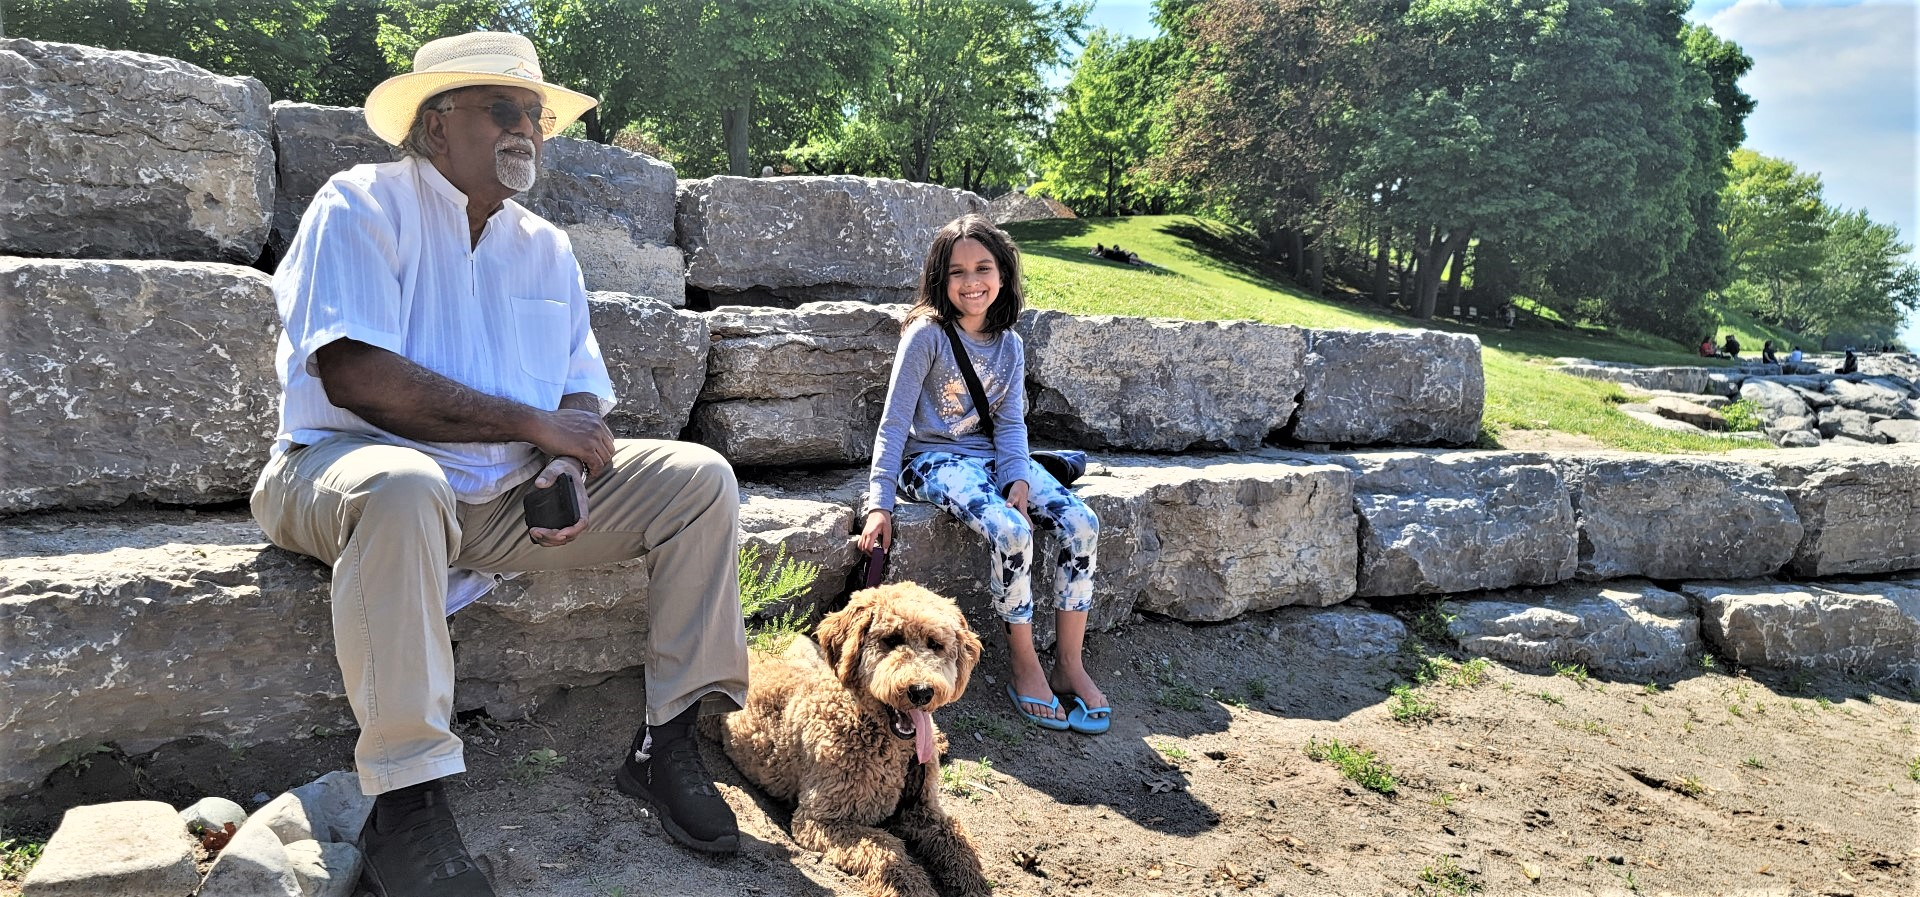 grandfather wearing hat seated on rocks with granddaughter and golden doodle